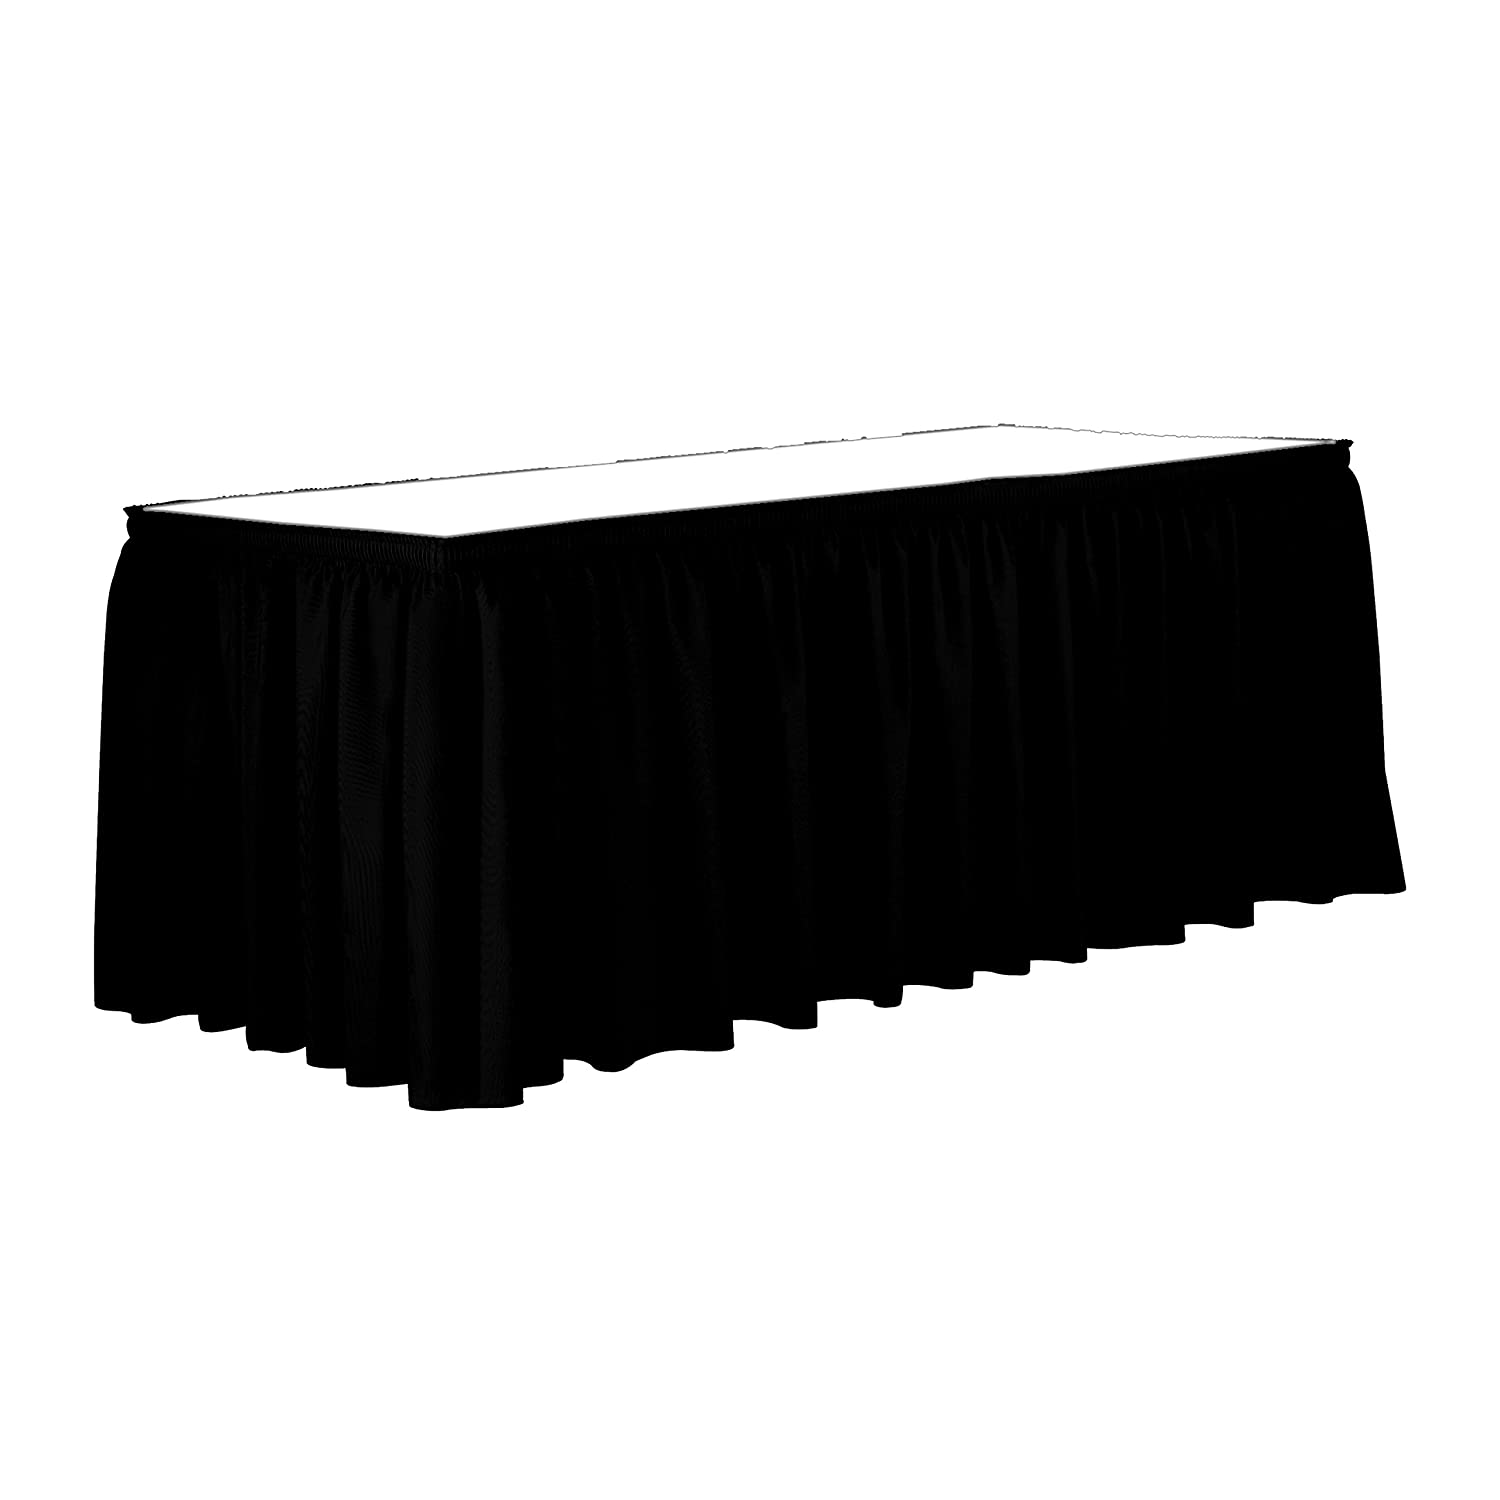 "Ultimate Textile 14 ft. Shirred Pleat Polyester Table Skirt - 36"" Counter Serving Height, Black"